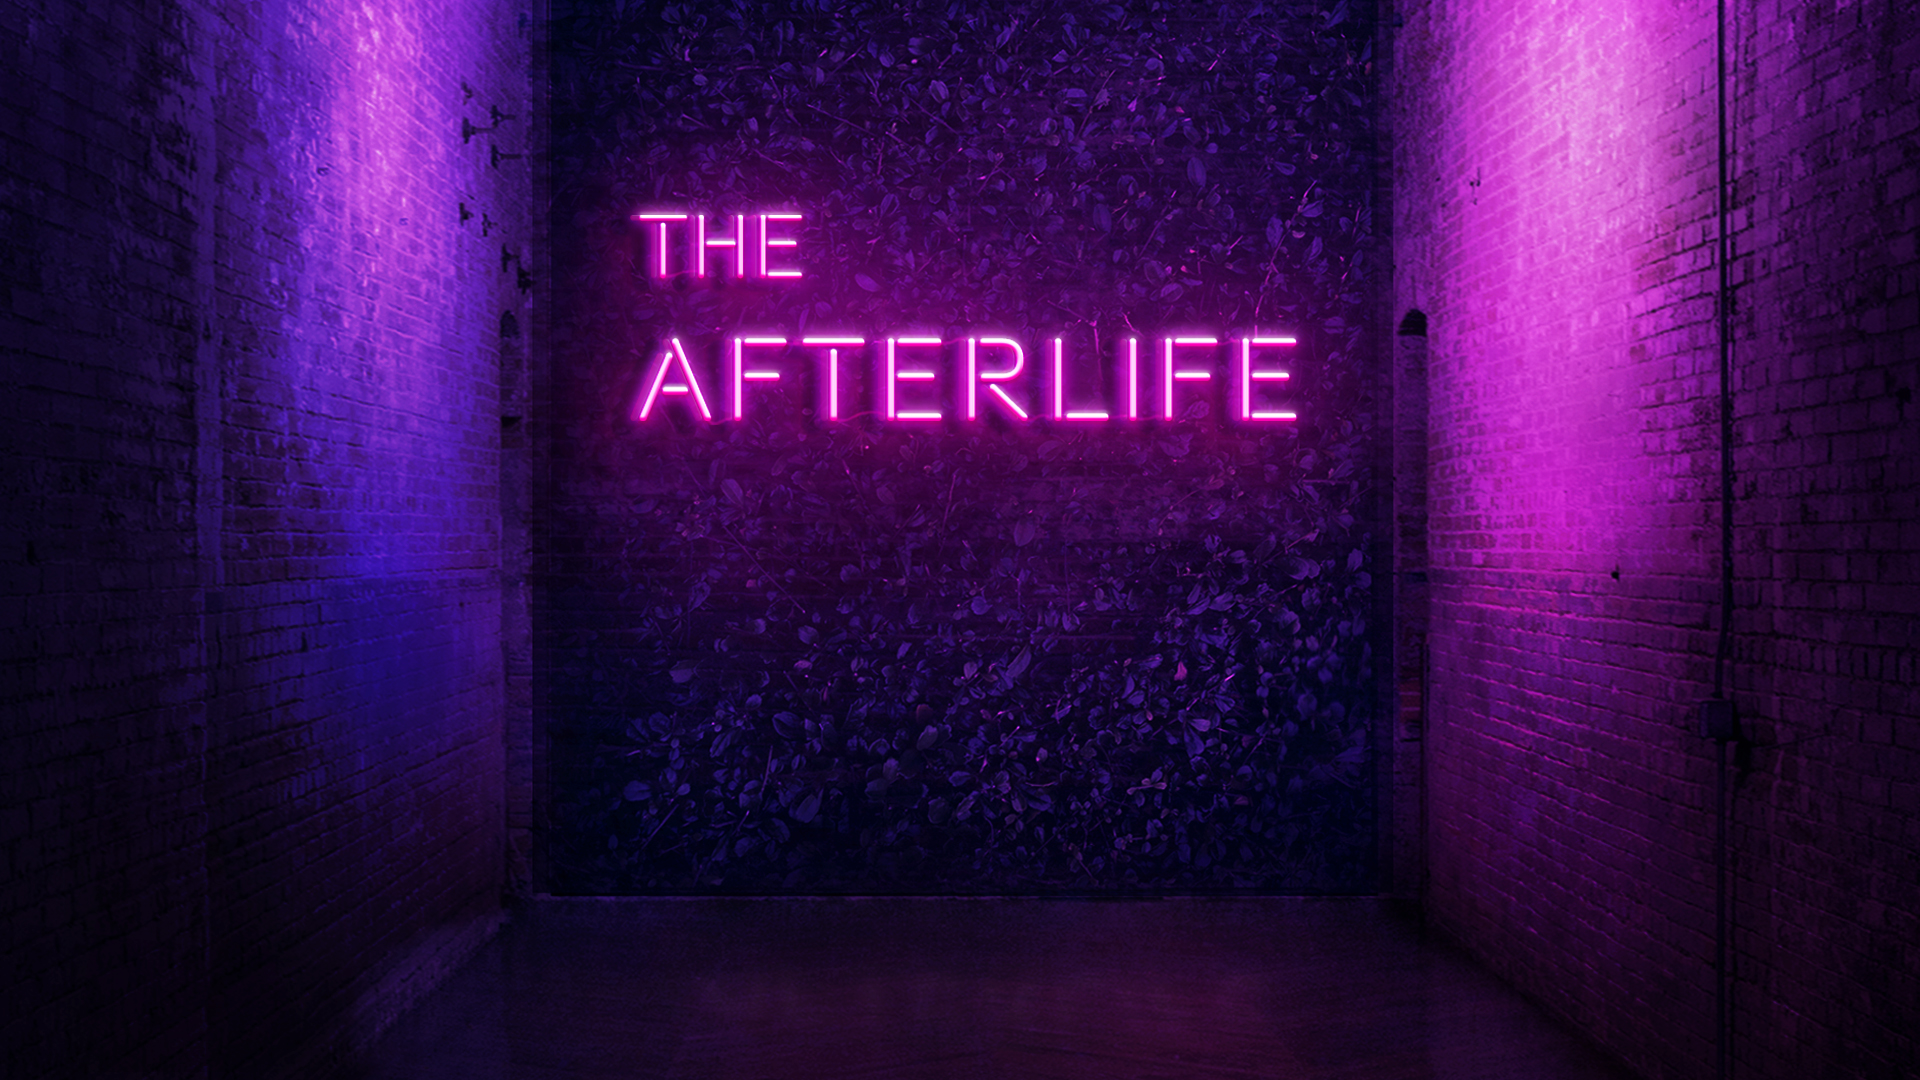 Afterlife webmedia 1920x1080